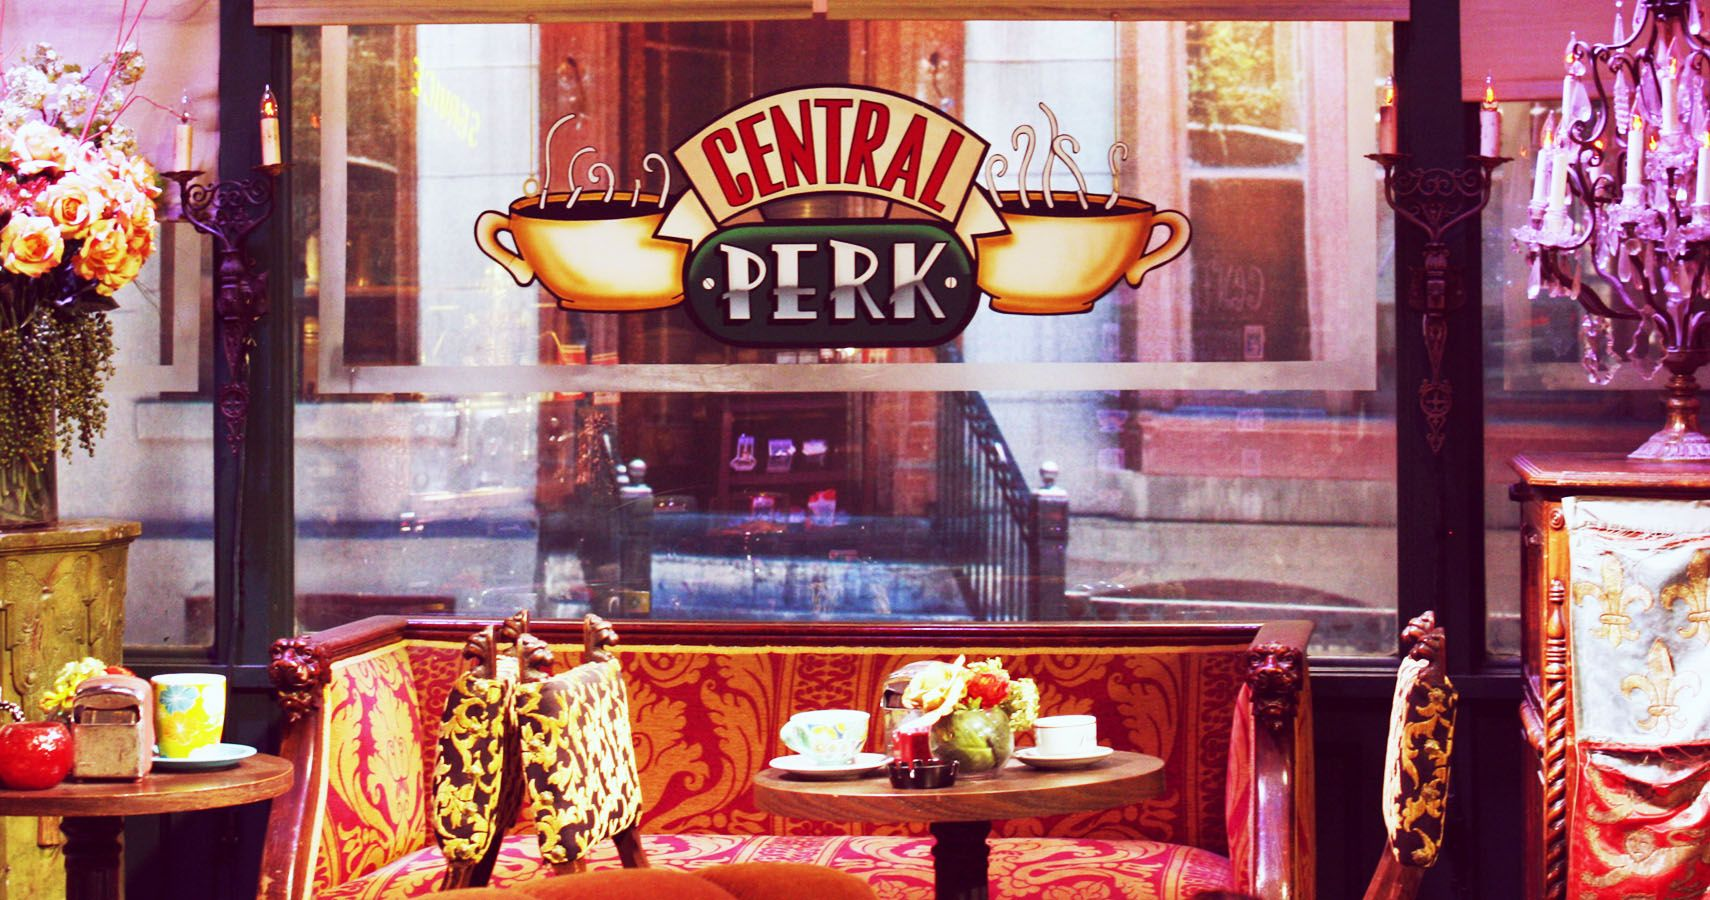 Central Perks: How The Friends Cast Negotiated $1 Million Per Episode